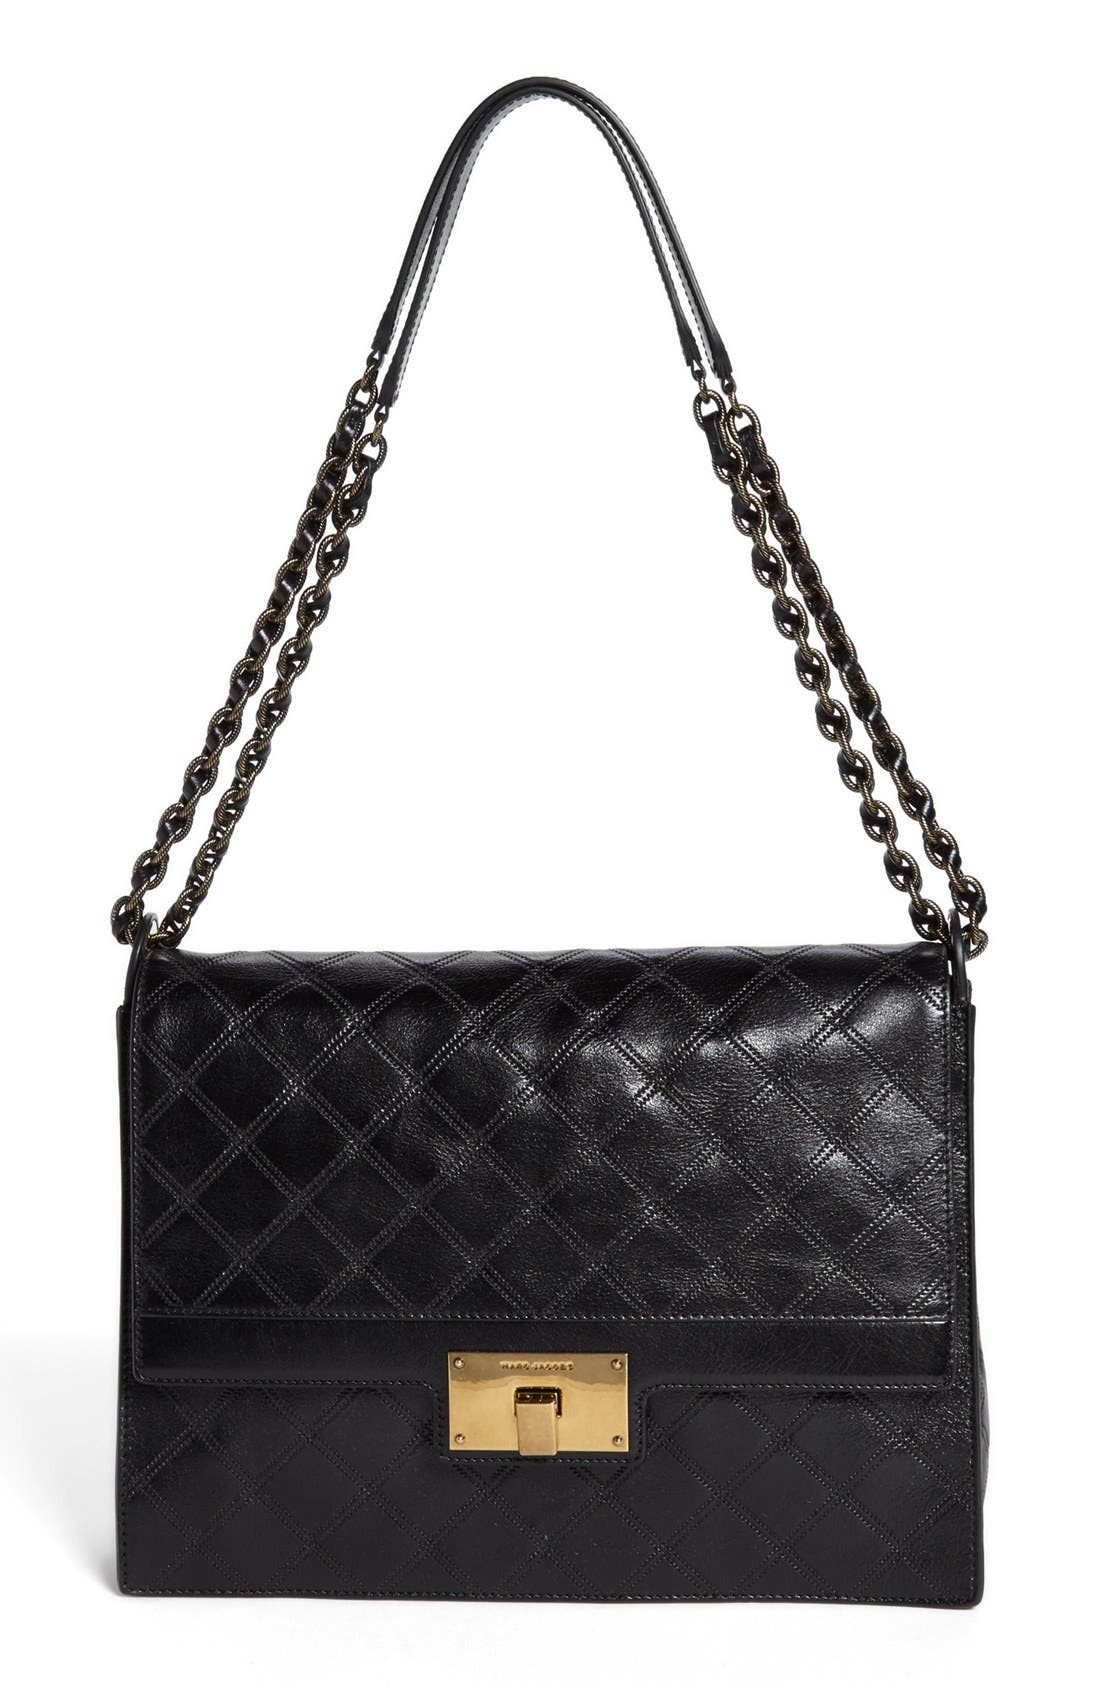 Main Image - MARC JACOBS 'The Lads' Leather Shoulder Bag